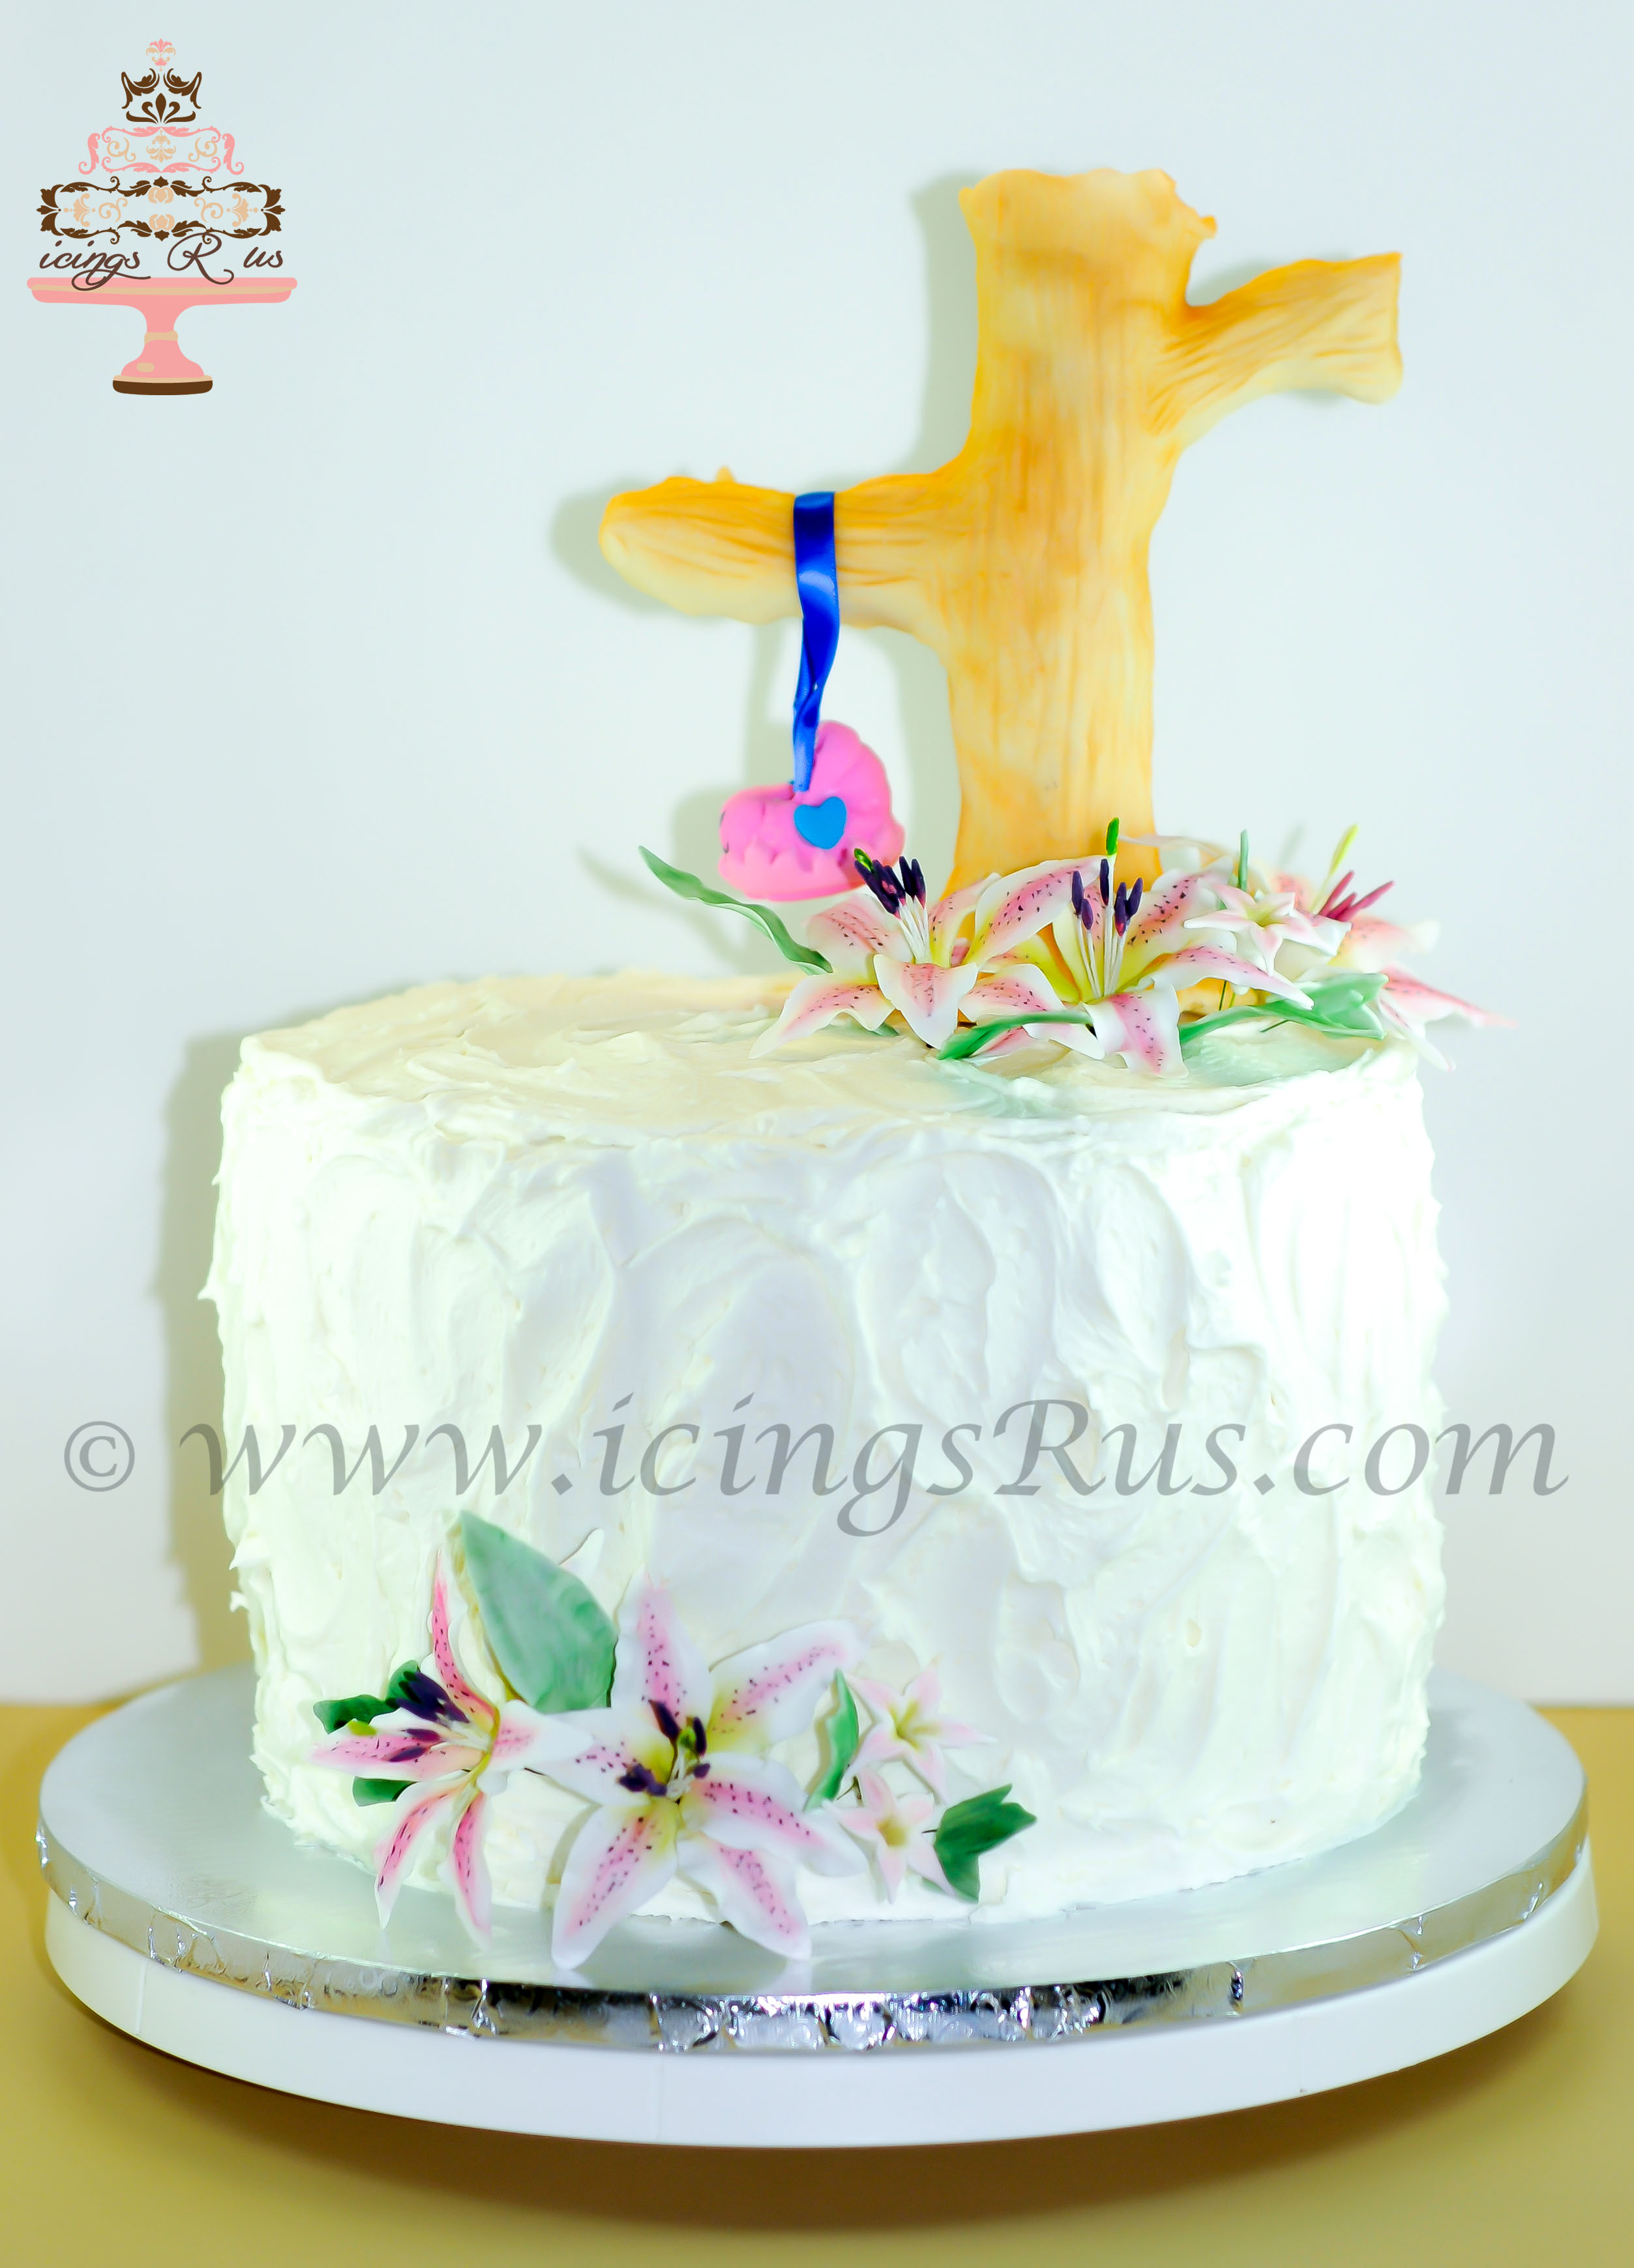 icingsRus Baby Carriage in a Tree Cake